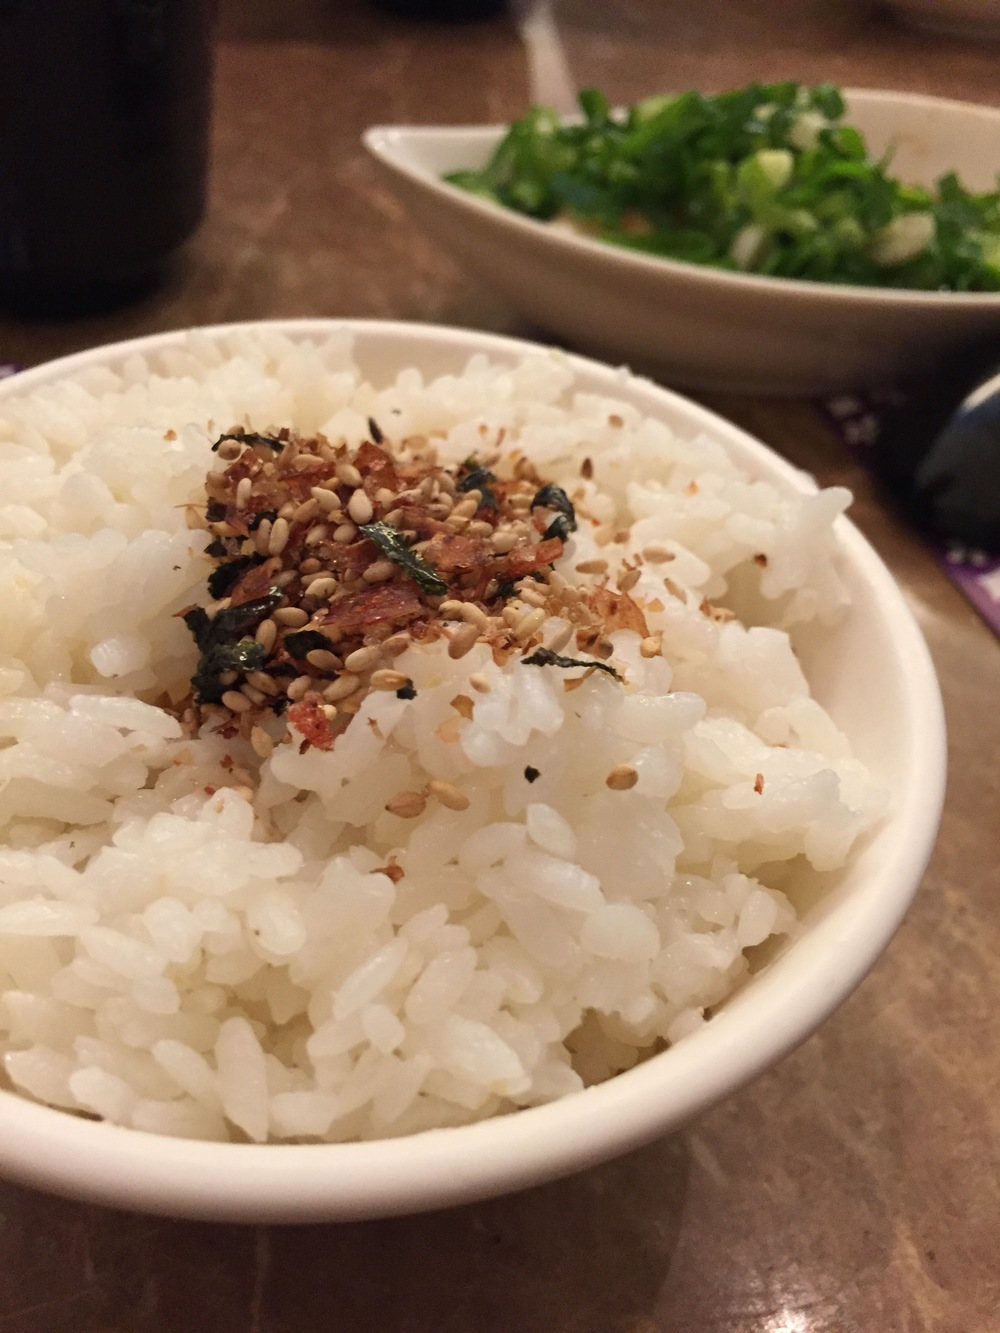 Rice with furikake. I need more furikake in my life